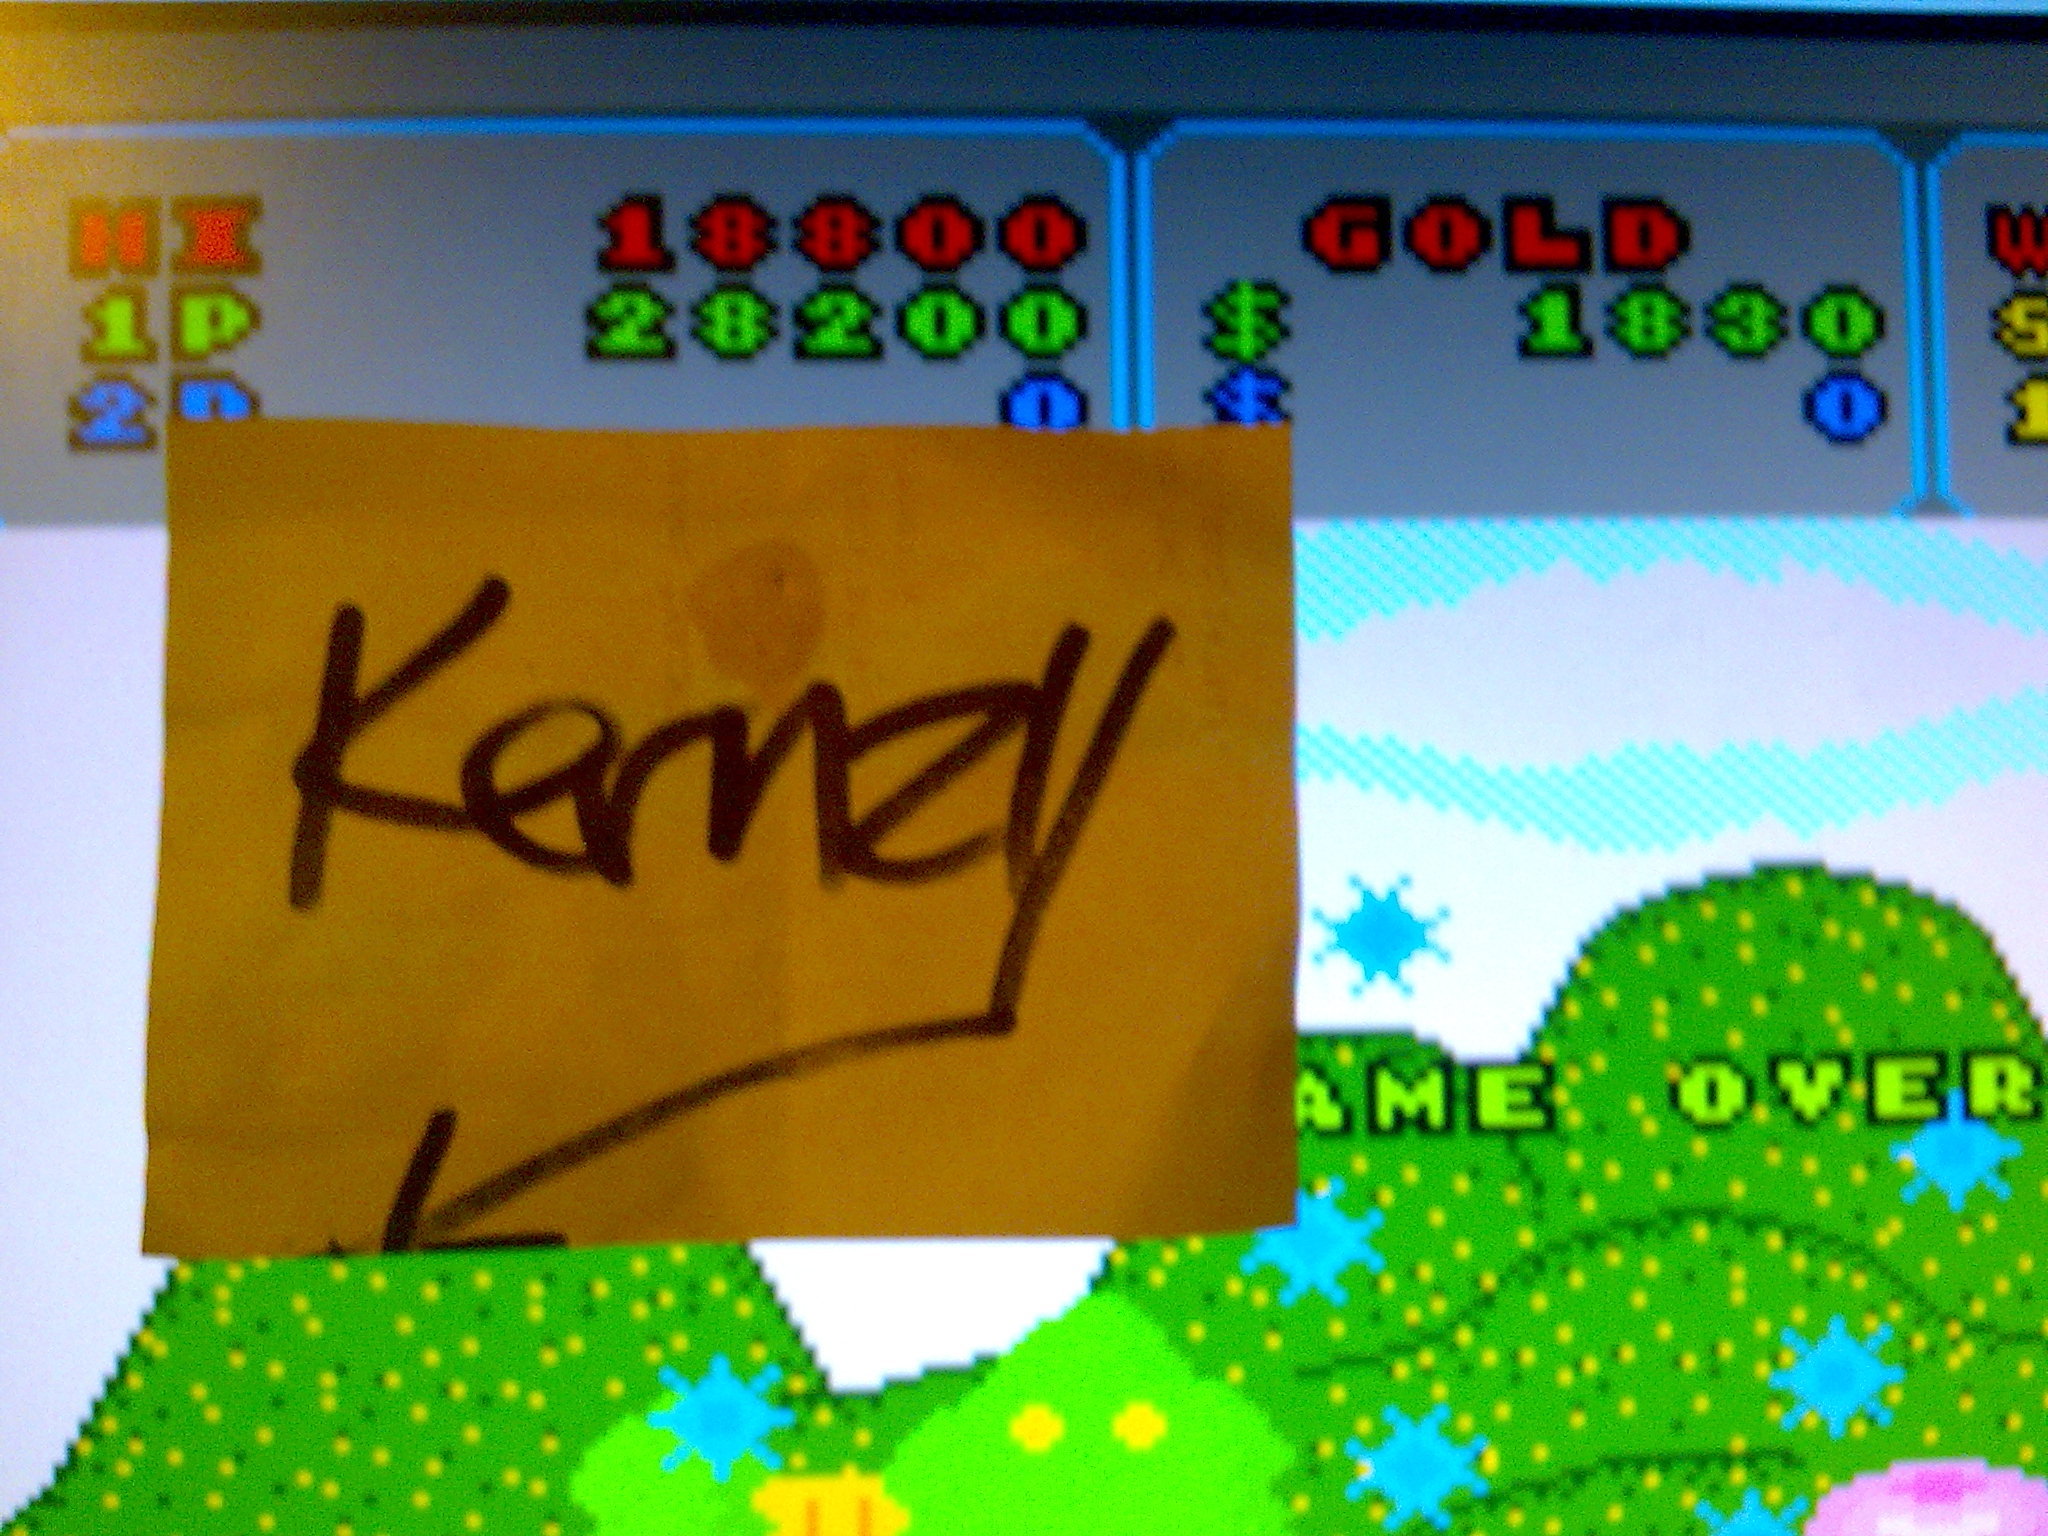 kernzy: Fantasy Zone (TurboGrafx-16/PC Engine Emulated) 28,200 points on 2014-10-09 14:16:04